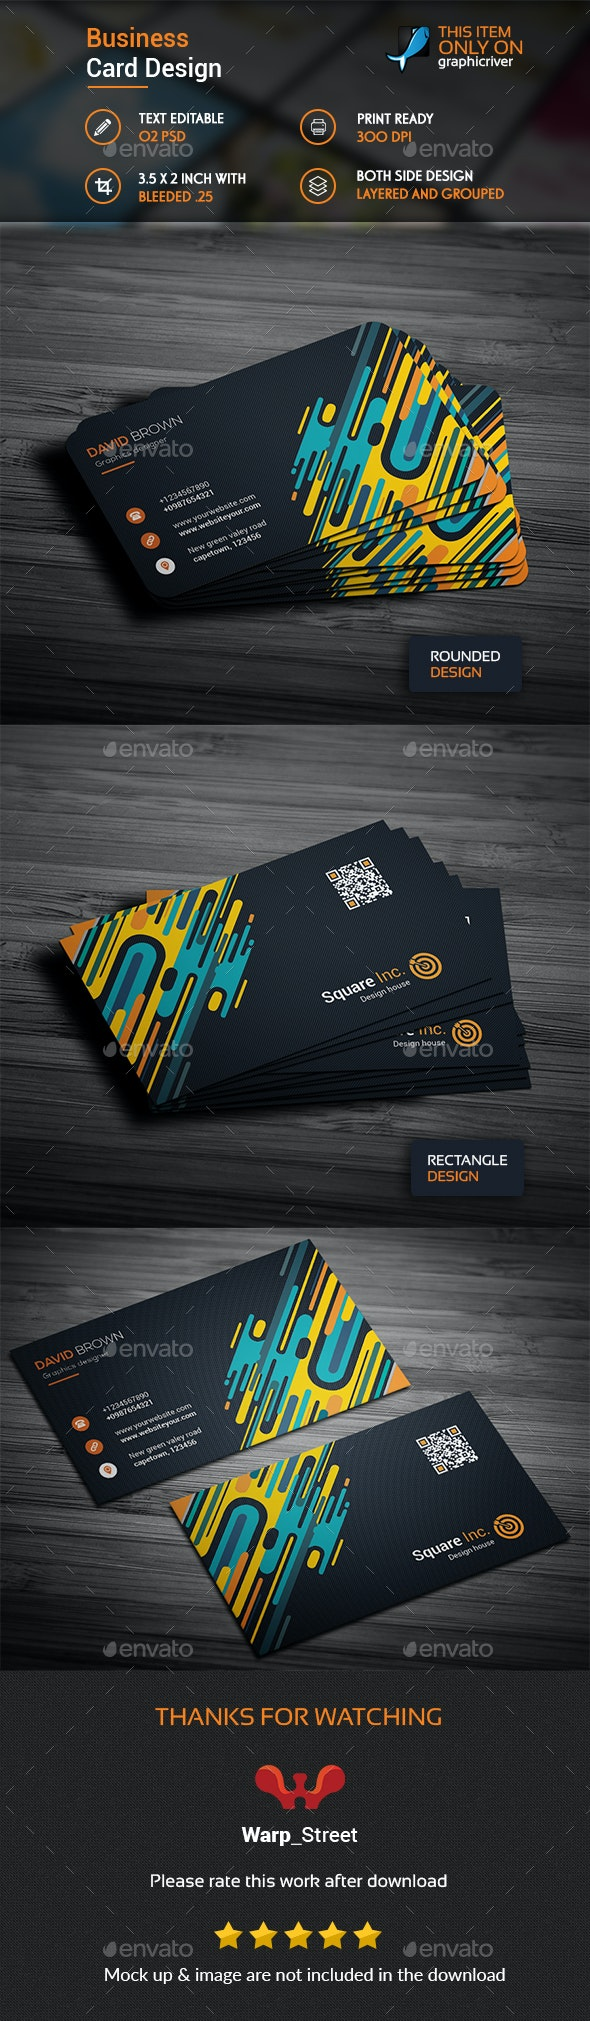 Colorful Business Card Template - Business Cards Print Templates